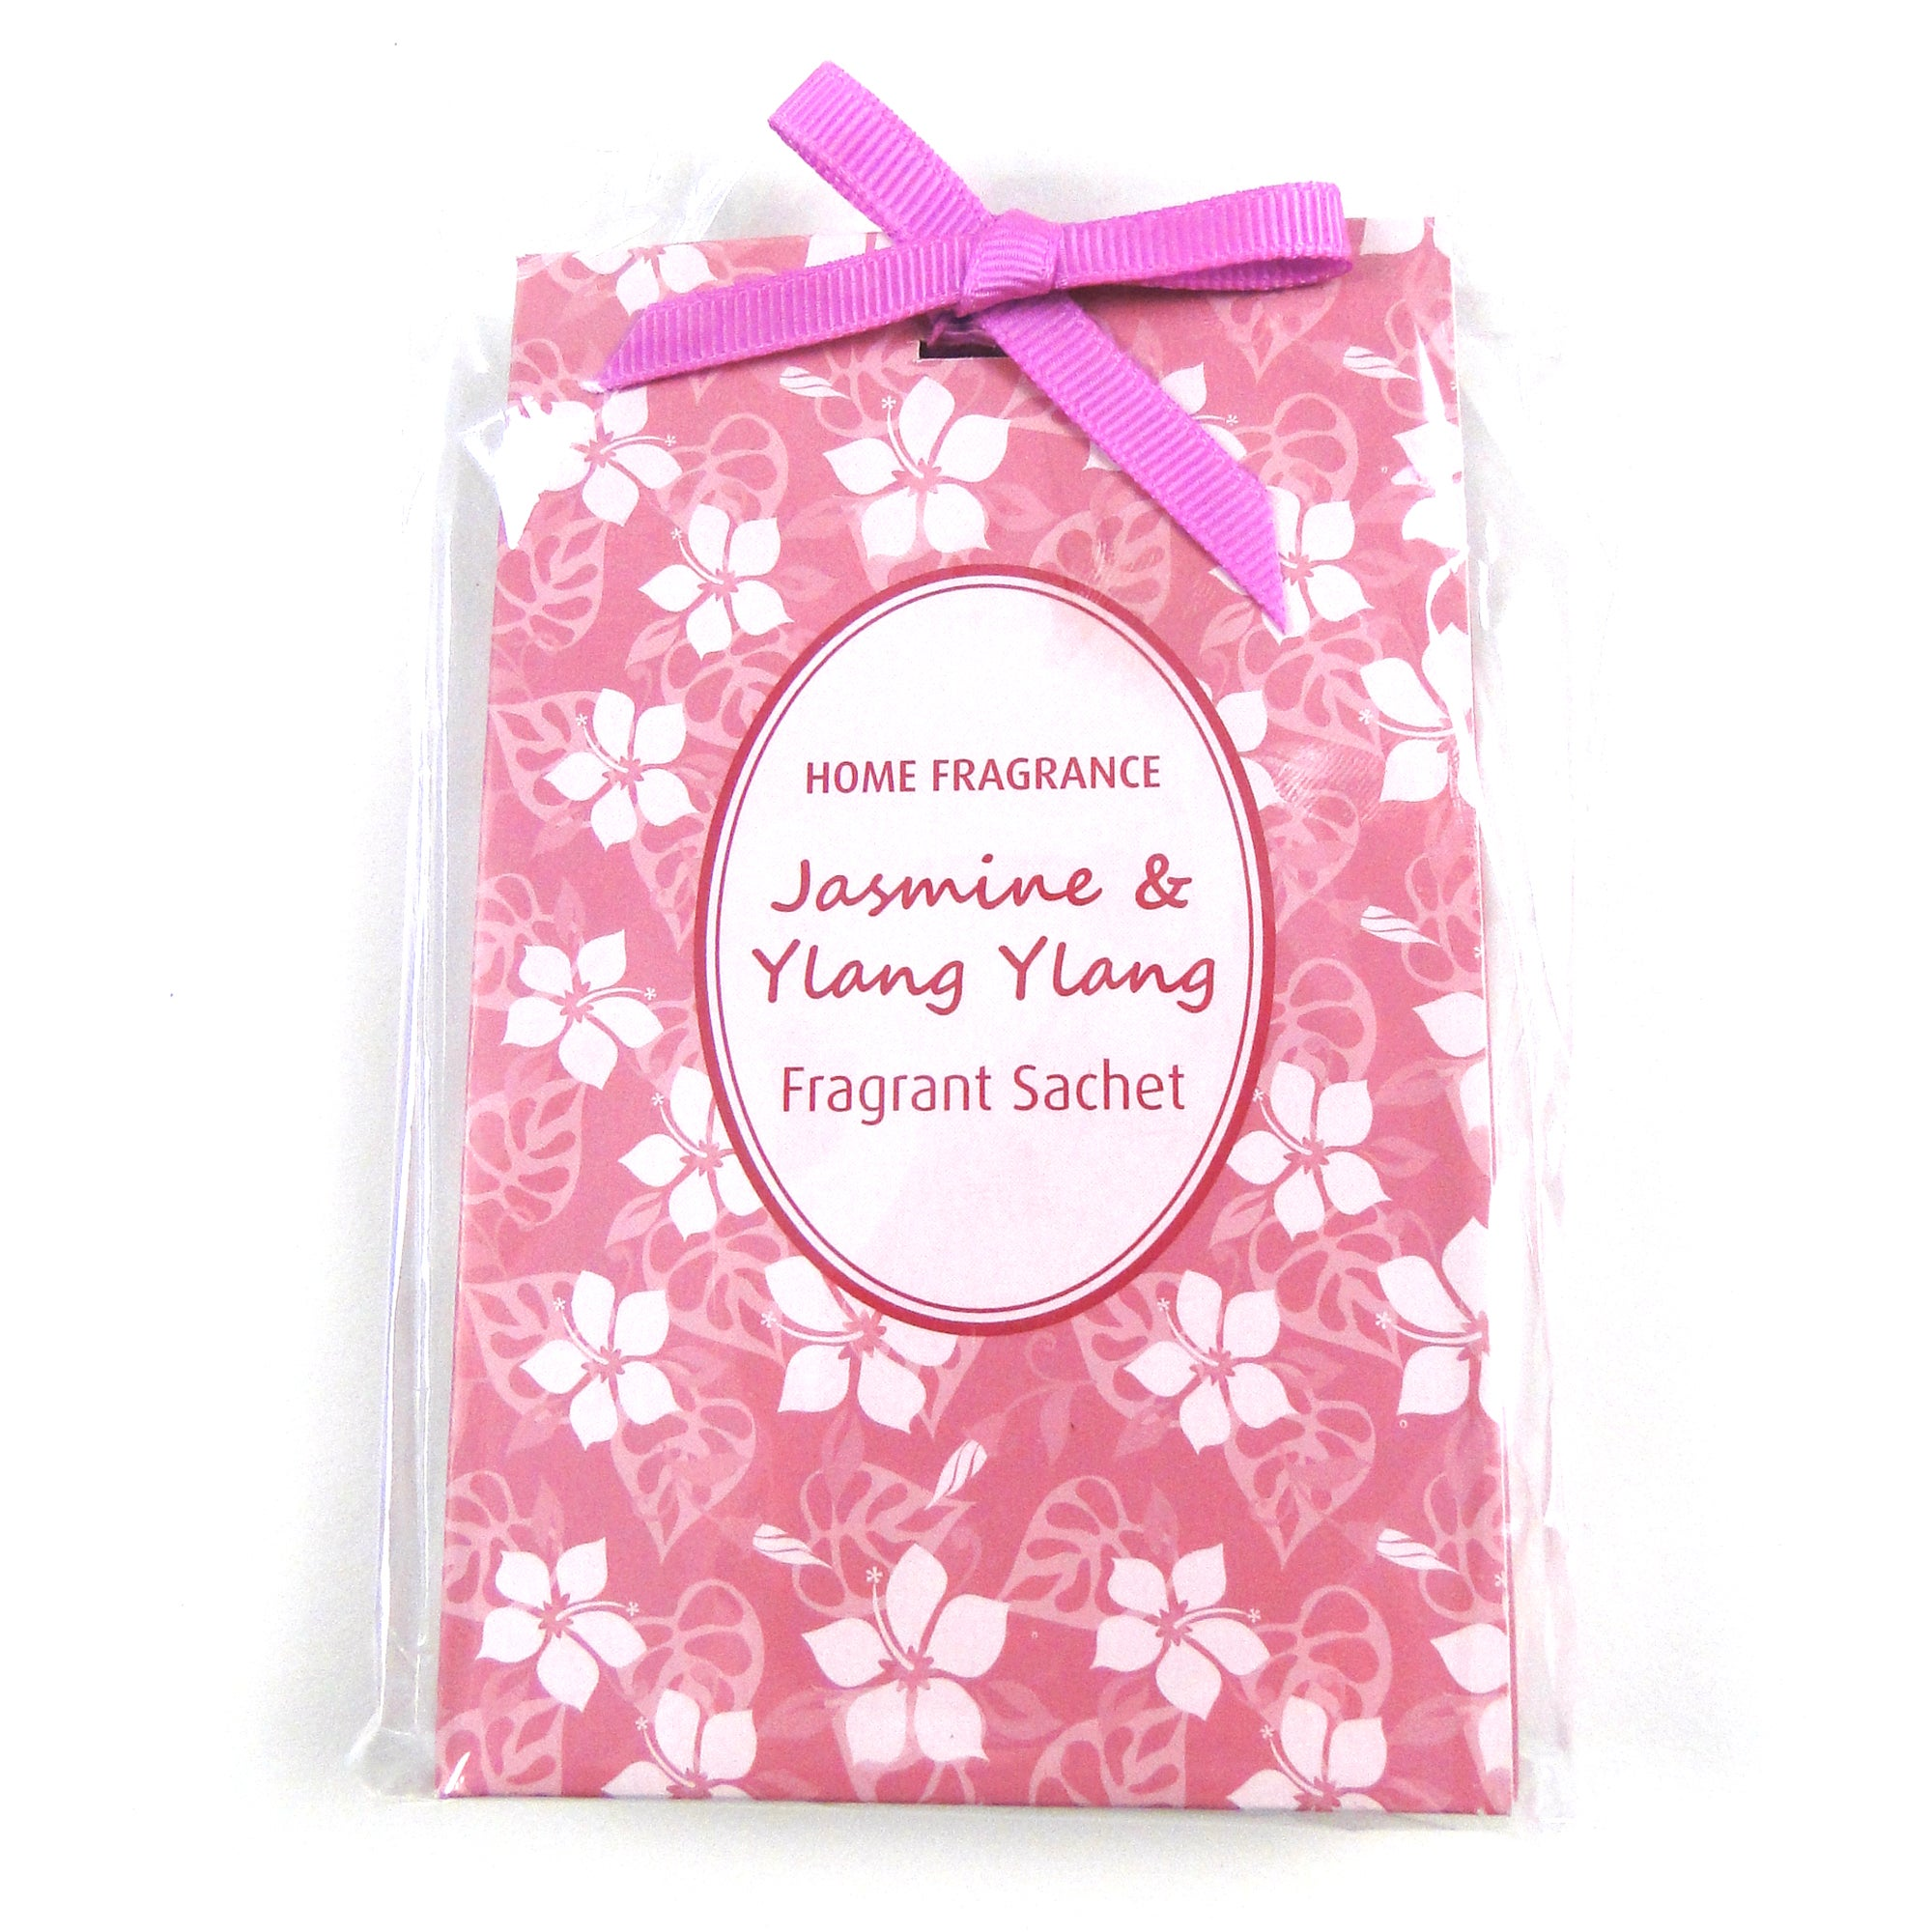 Home Fragrance Jasmine and Ylang Ylang Scented Sachet